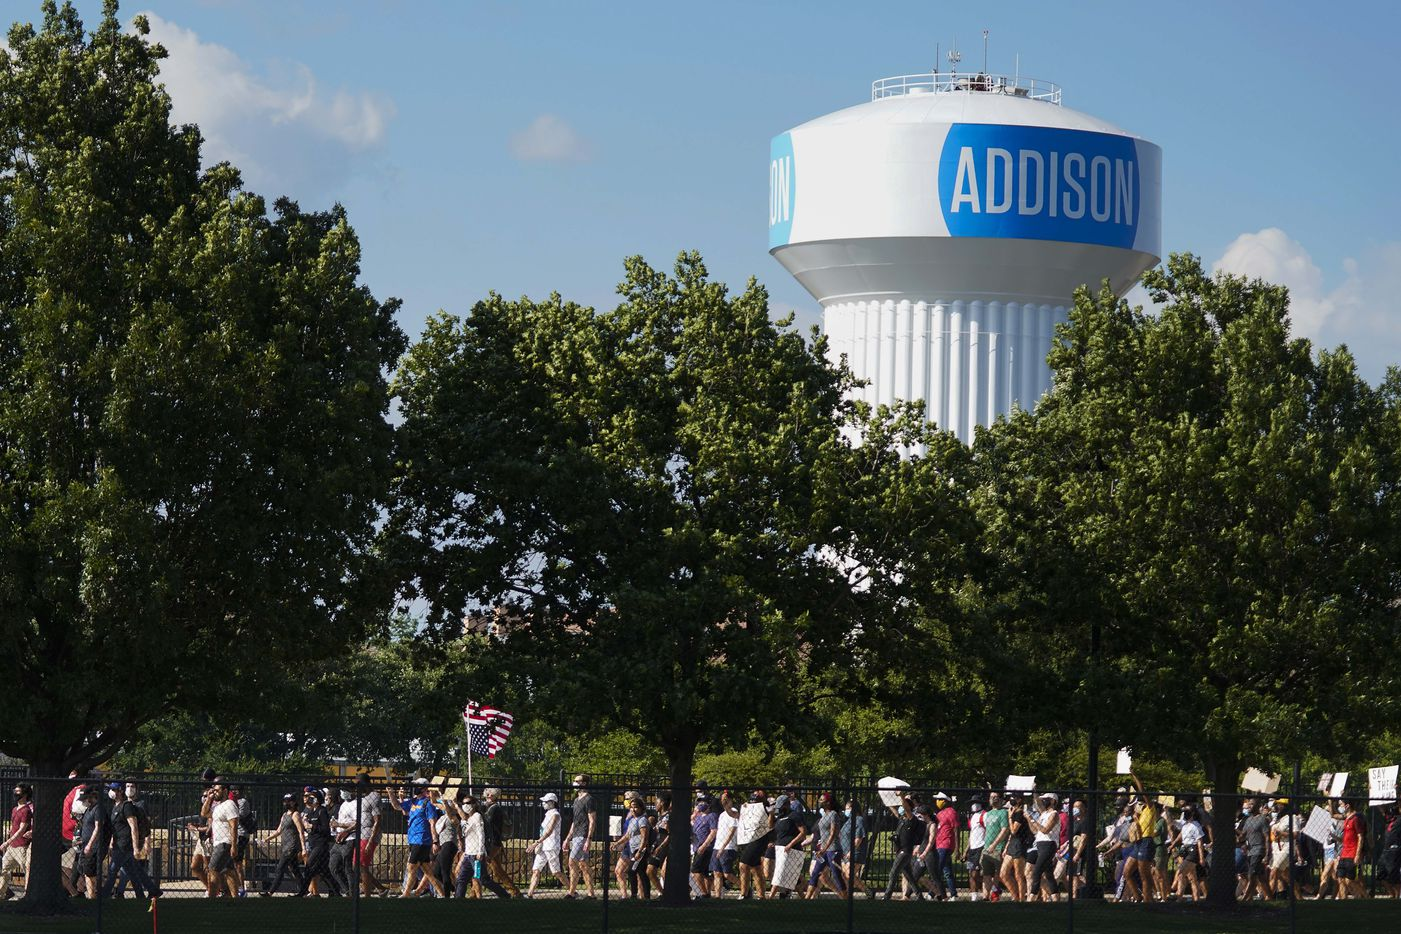 Demonstrators march through Addison Circle Park during a protest on Thursday, June 4, 2020, in Addison. Protests continued Thursday in the response to the death of George Floyd.